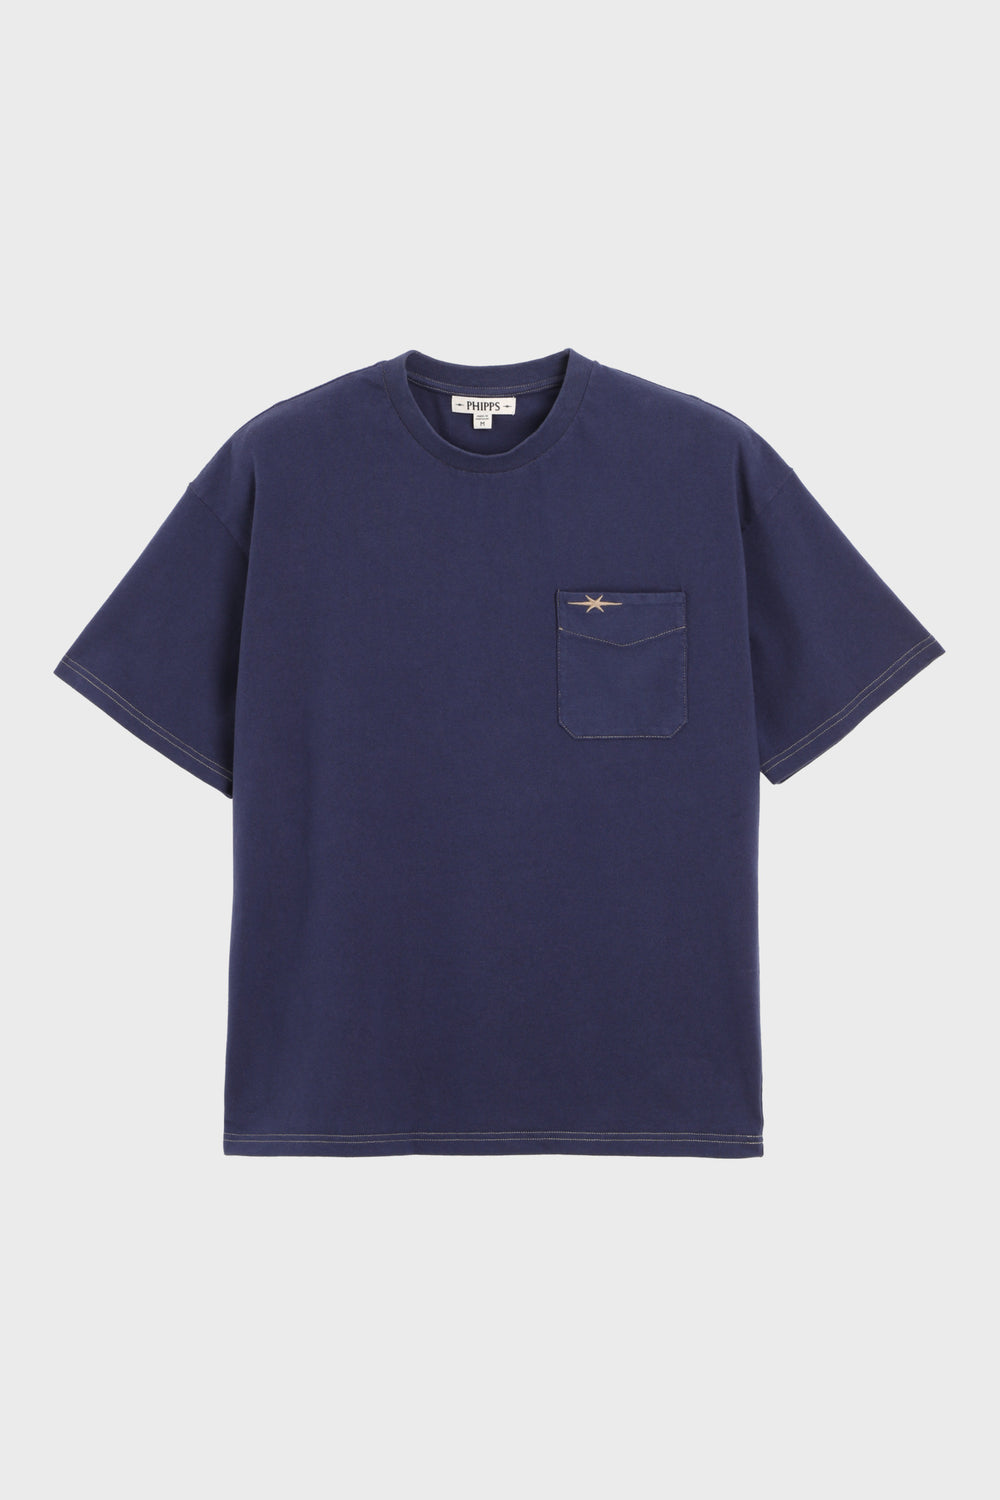 product-color-NAVY